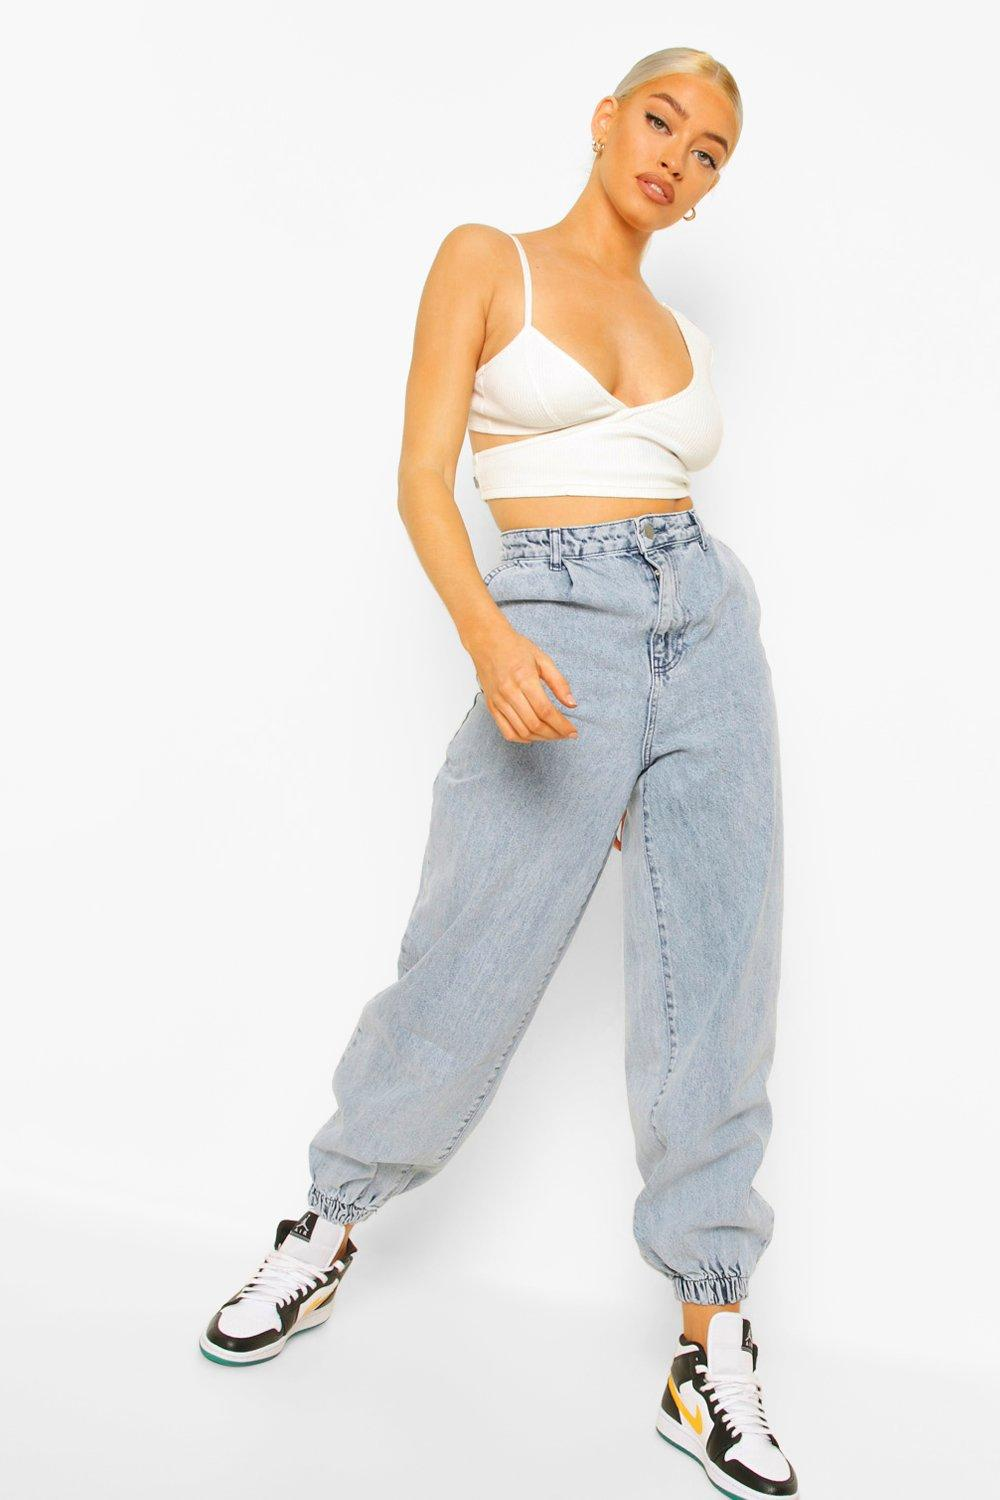 1980s Clothing, Fashion | 80s Style Clothes Womens Acid Wash Cuffed Extreme Jogger Jeans - Grey - 12 $24.00 AT vintagedancer.com